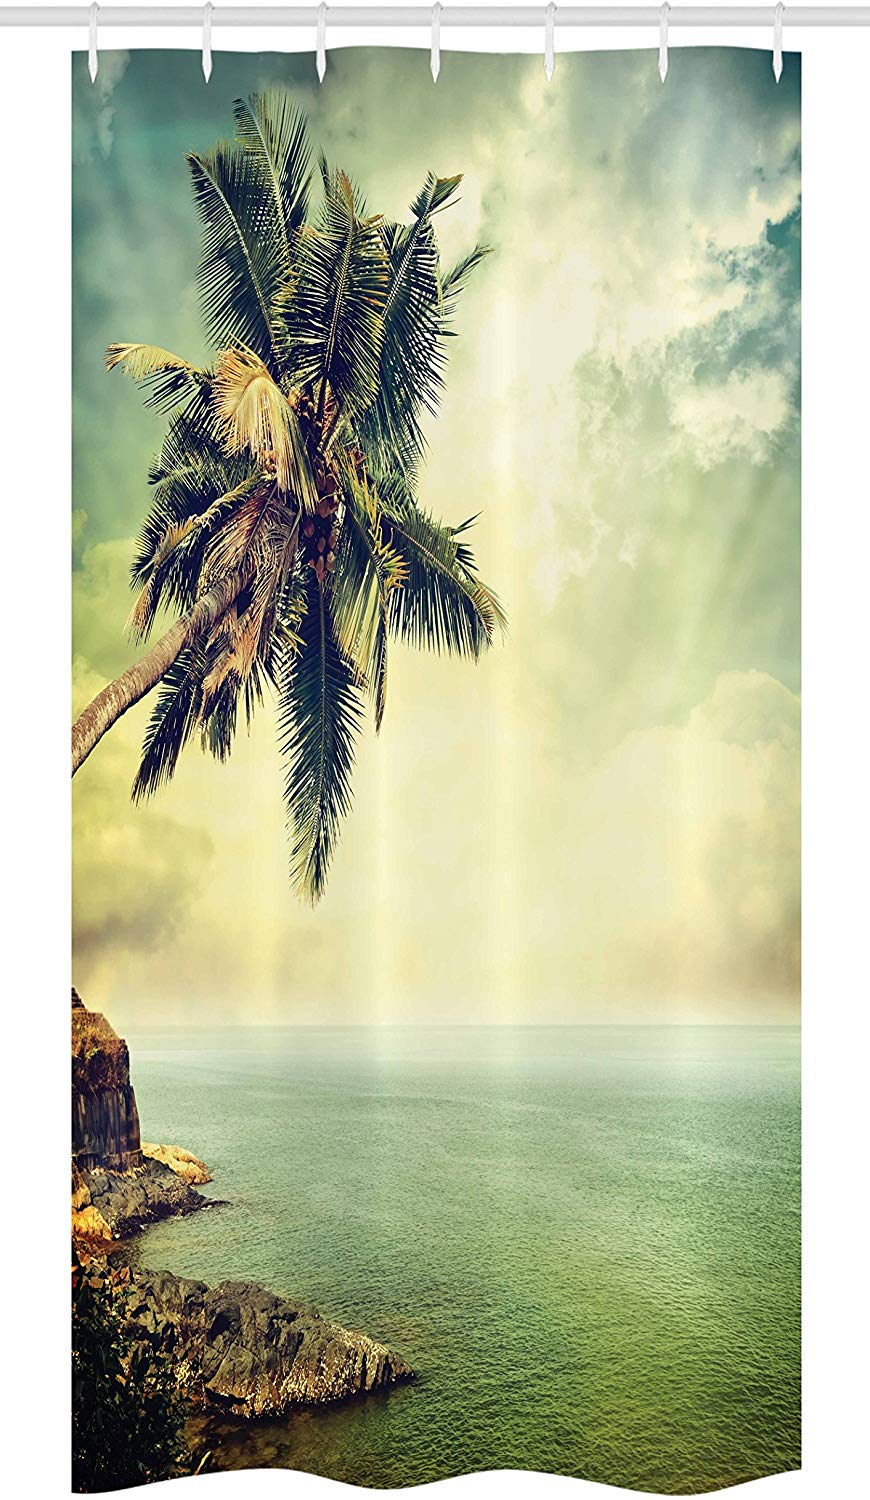 Hawaiian Stall Shower Curtain Palm Tree Rocky Shore Caribbean Mist Traveling Resort Scenic Fabric Bathroom Decor Set with Hooks image